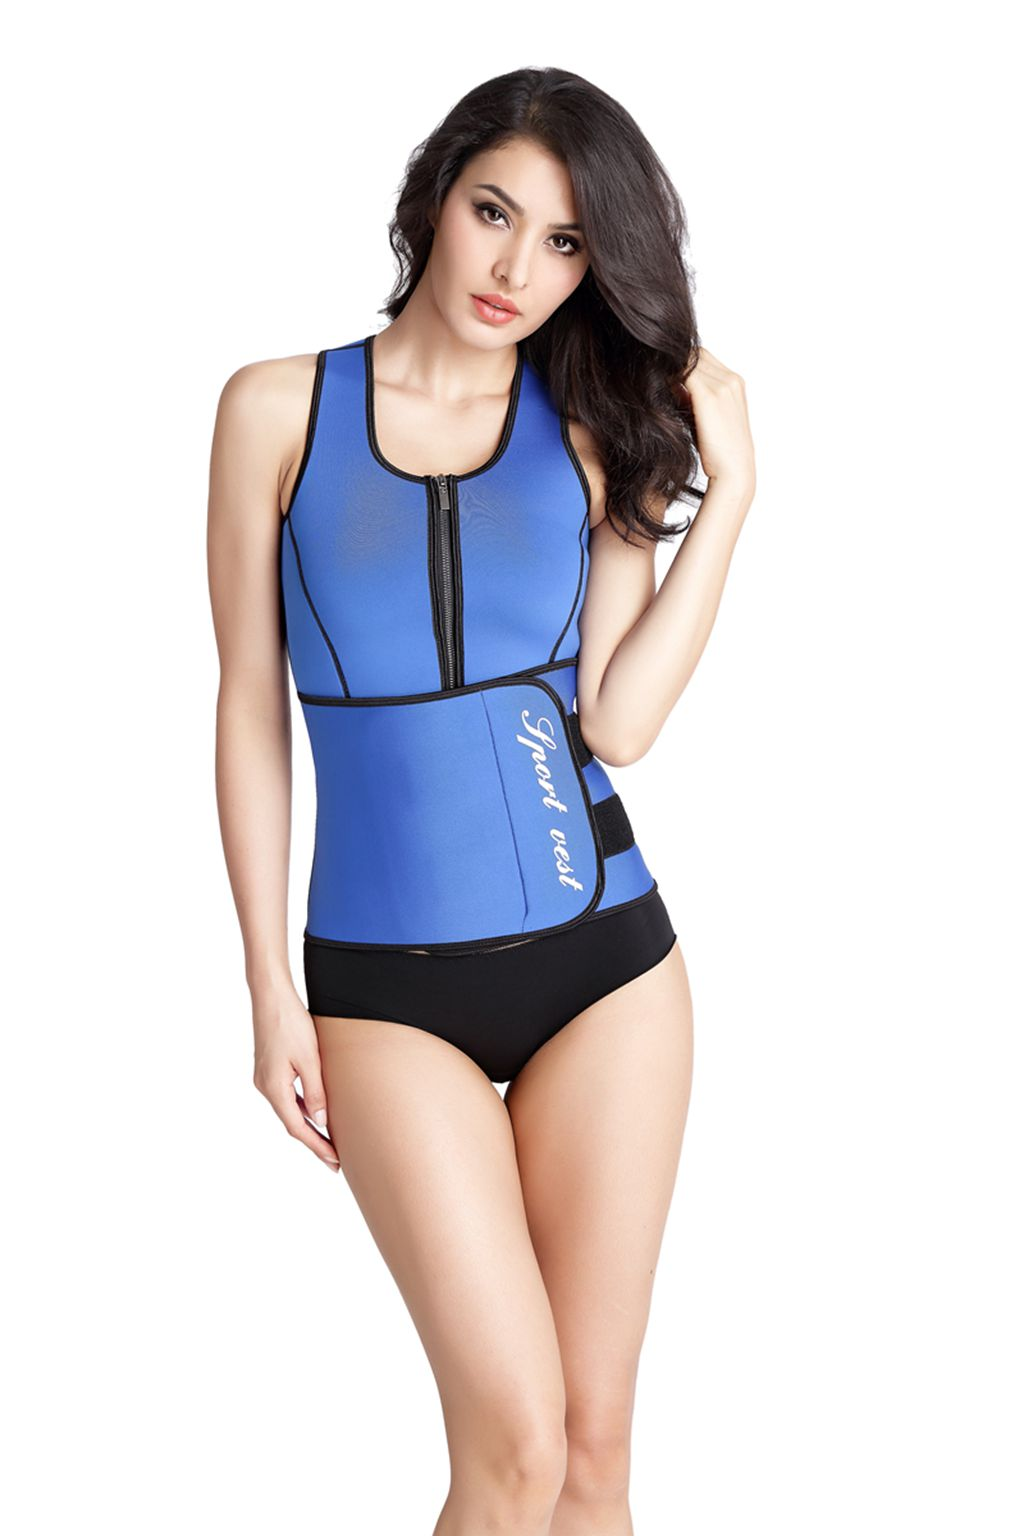 F3233-2 Slim Body Shaper